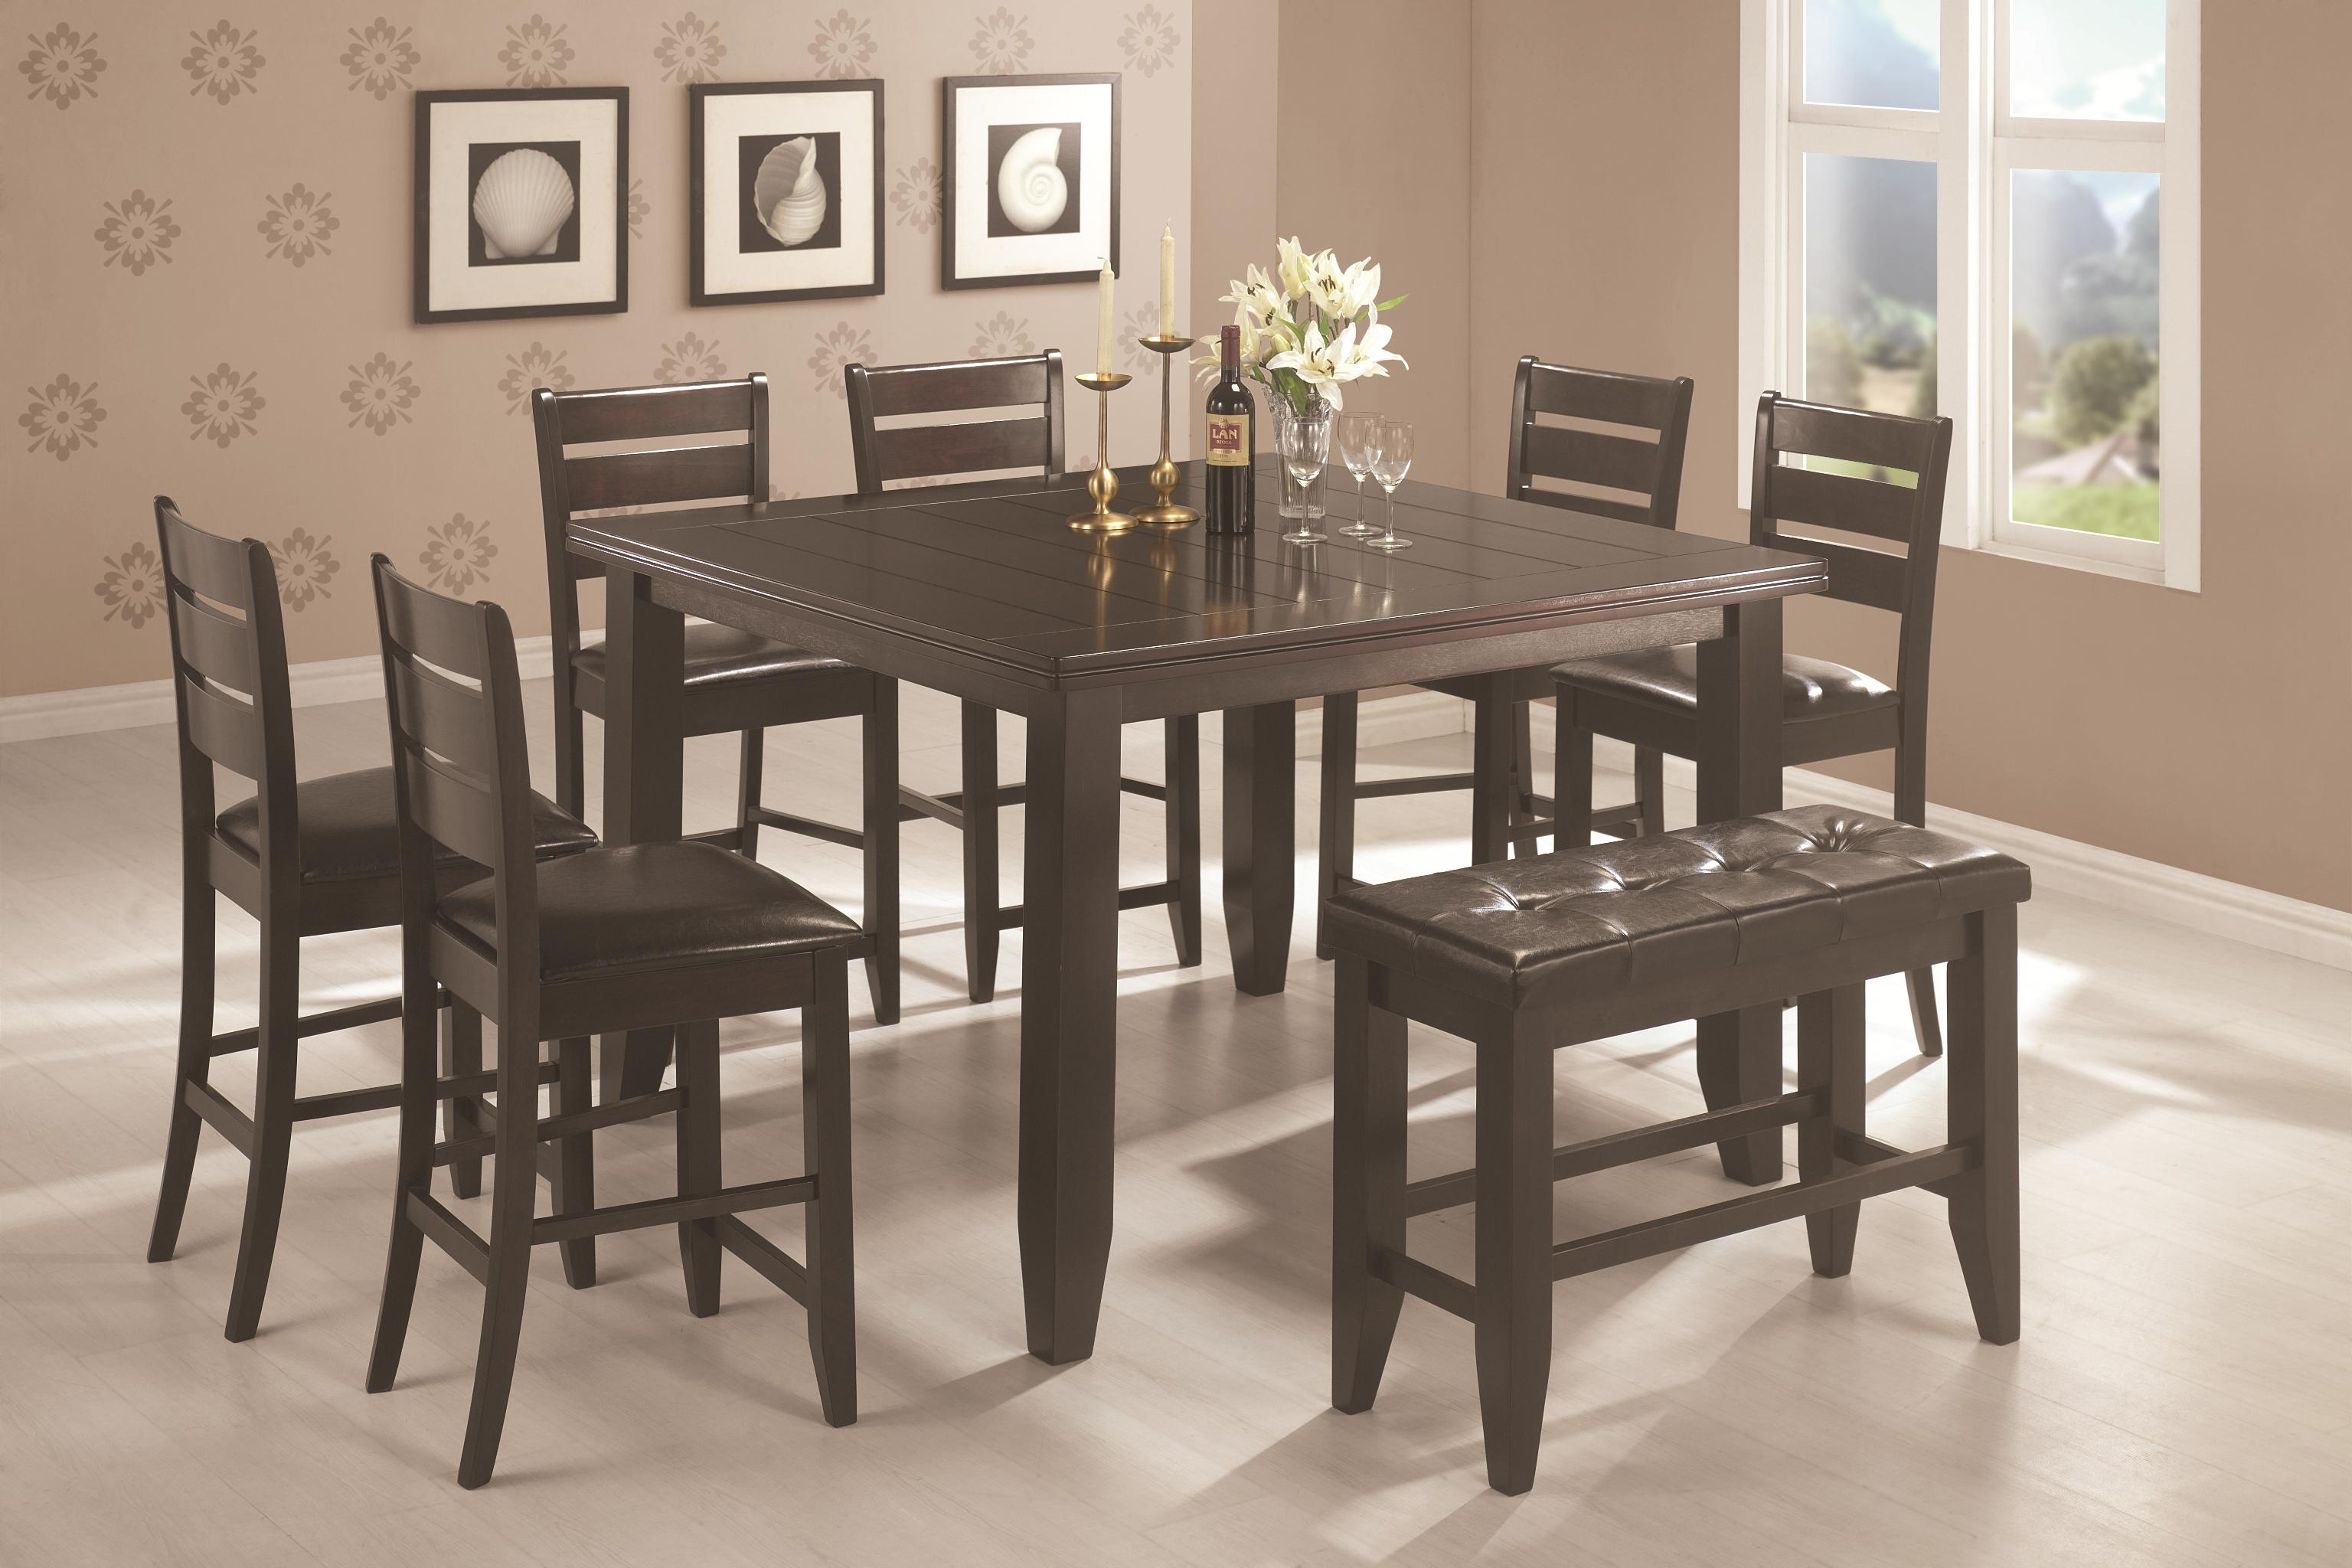 Coaster Page 102721 Dining Table | Northeast Factory Direct | Kitchen Table  Cleveland, Eastlake, Westlake, Mentor, Medina, Ohio